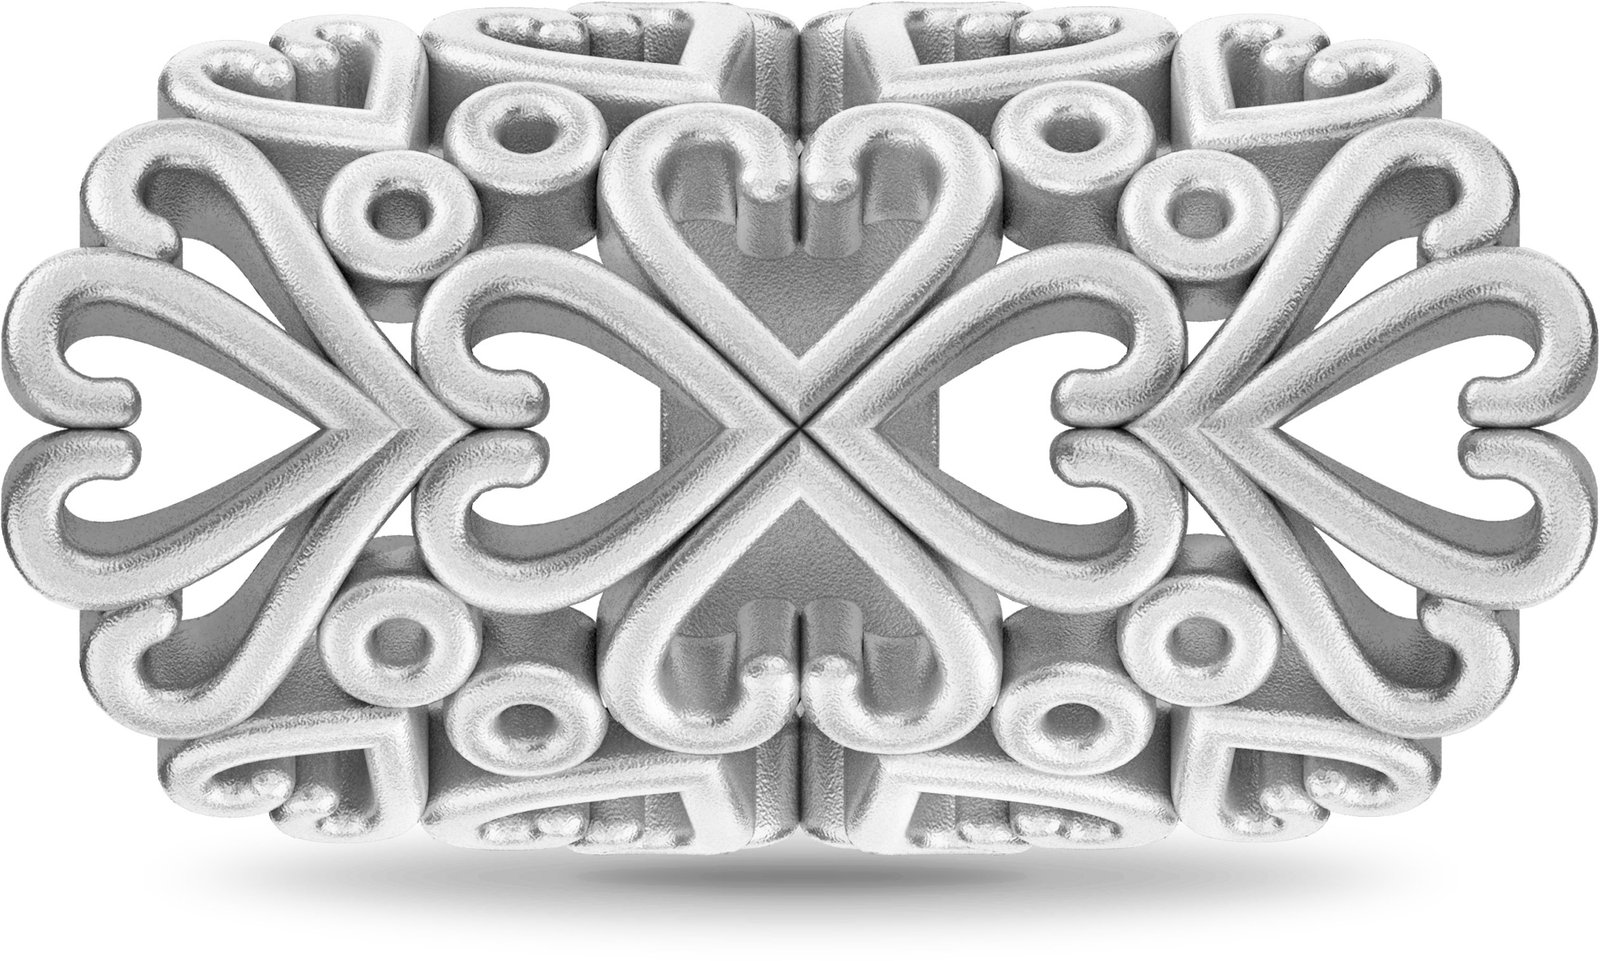 Endless Jewelry 41405 Million Heart Blossom Silver Charm